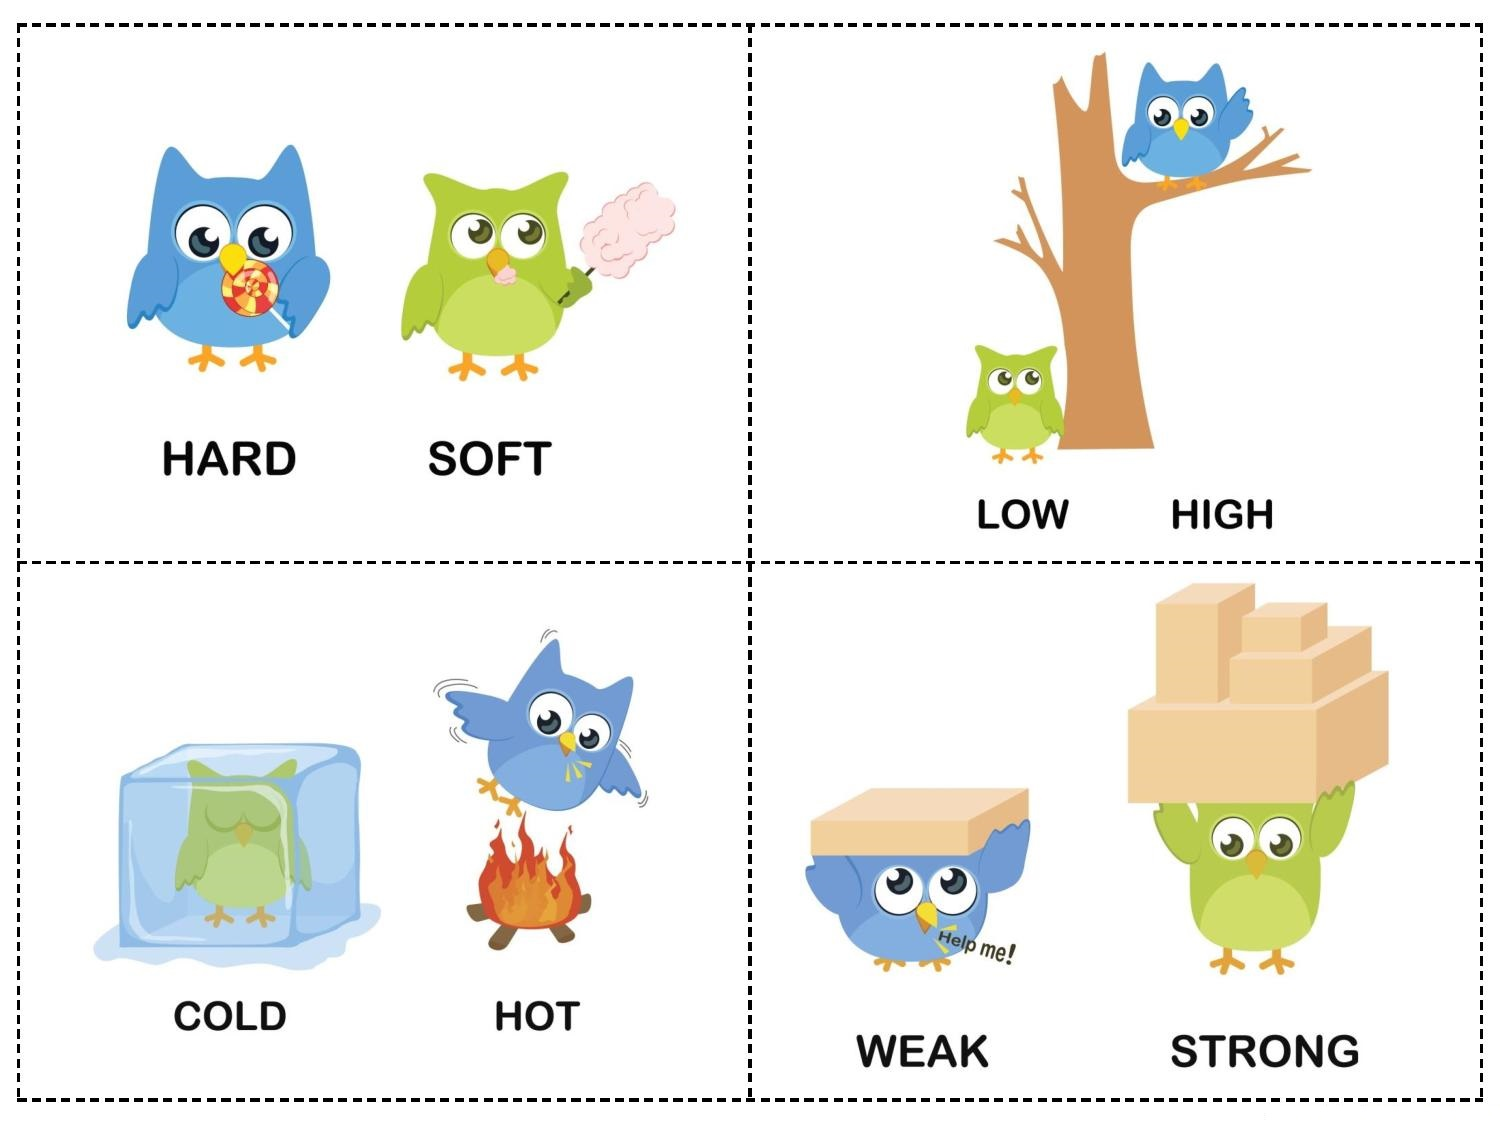 Owl Theme Opposites Cards 4 Preschool And Homeschool